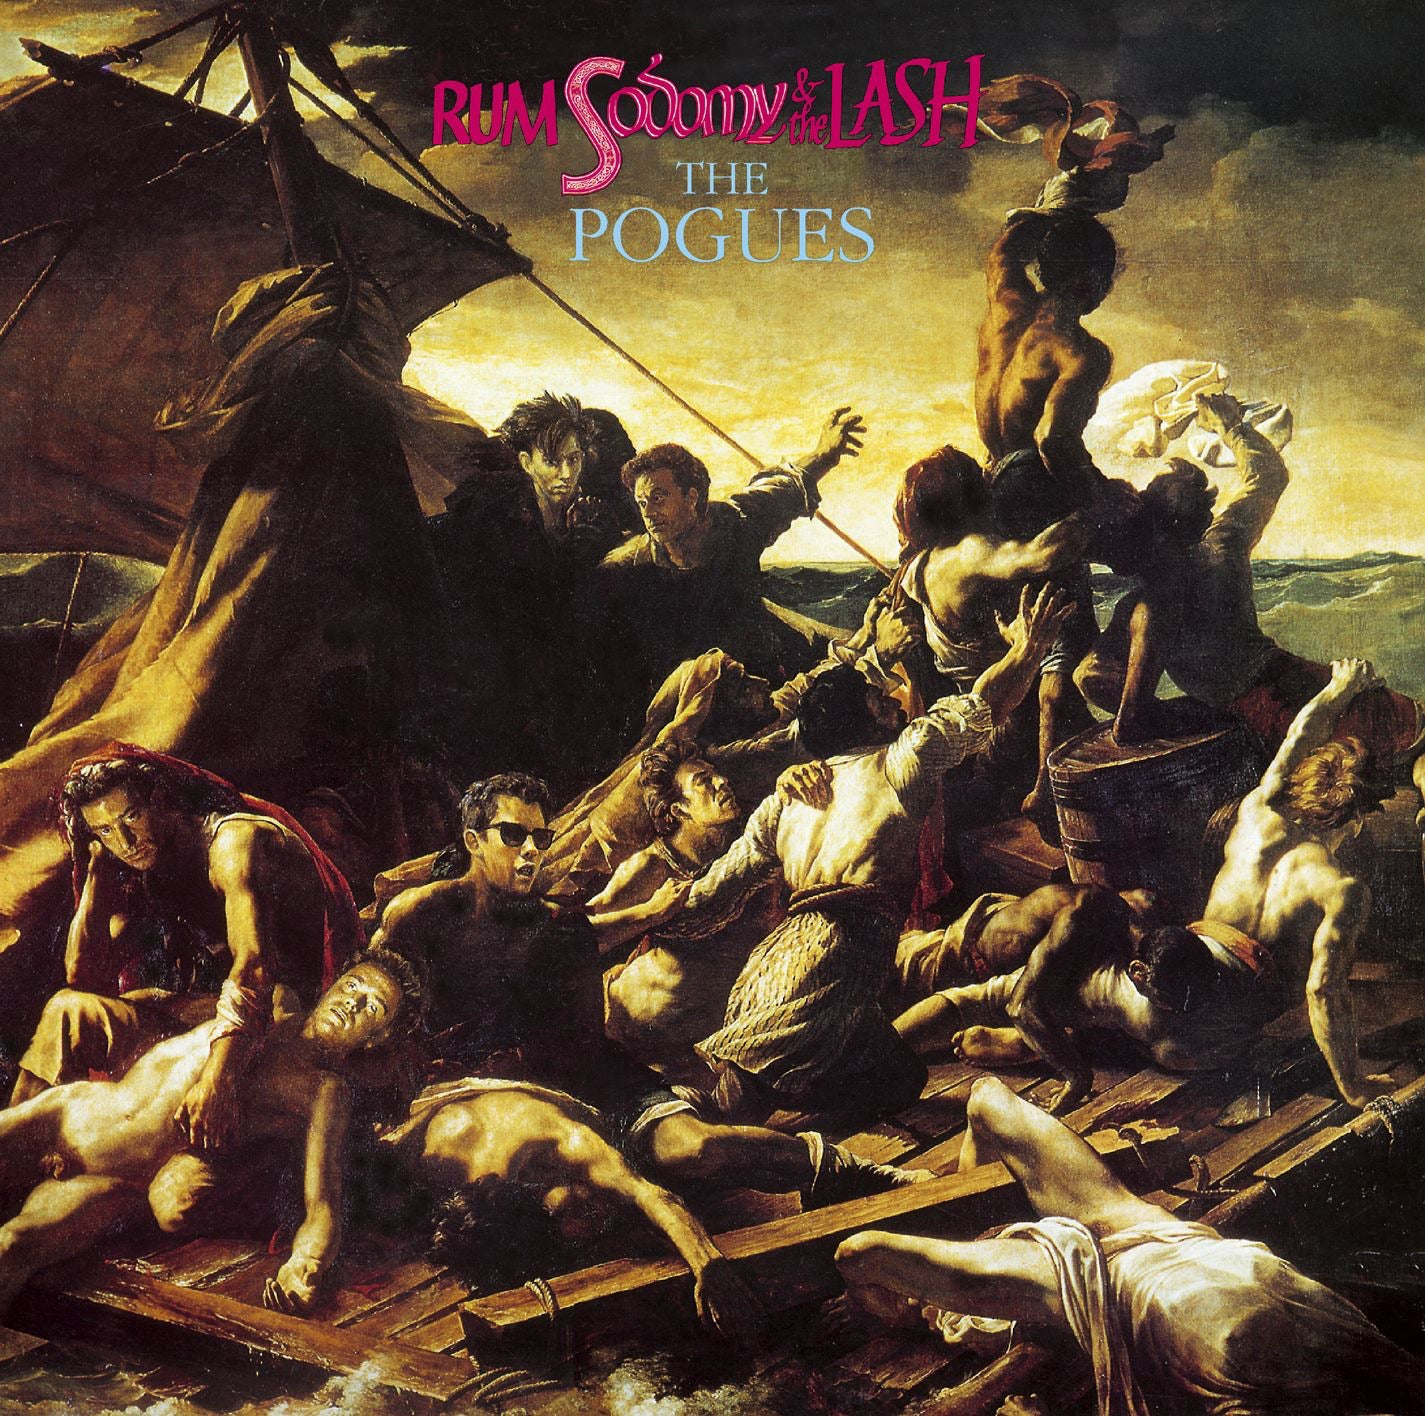 The Pogues - Rum Sodomy And The Lash